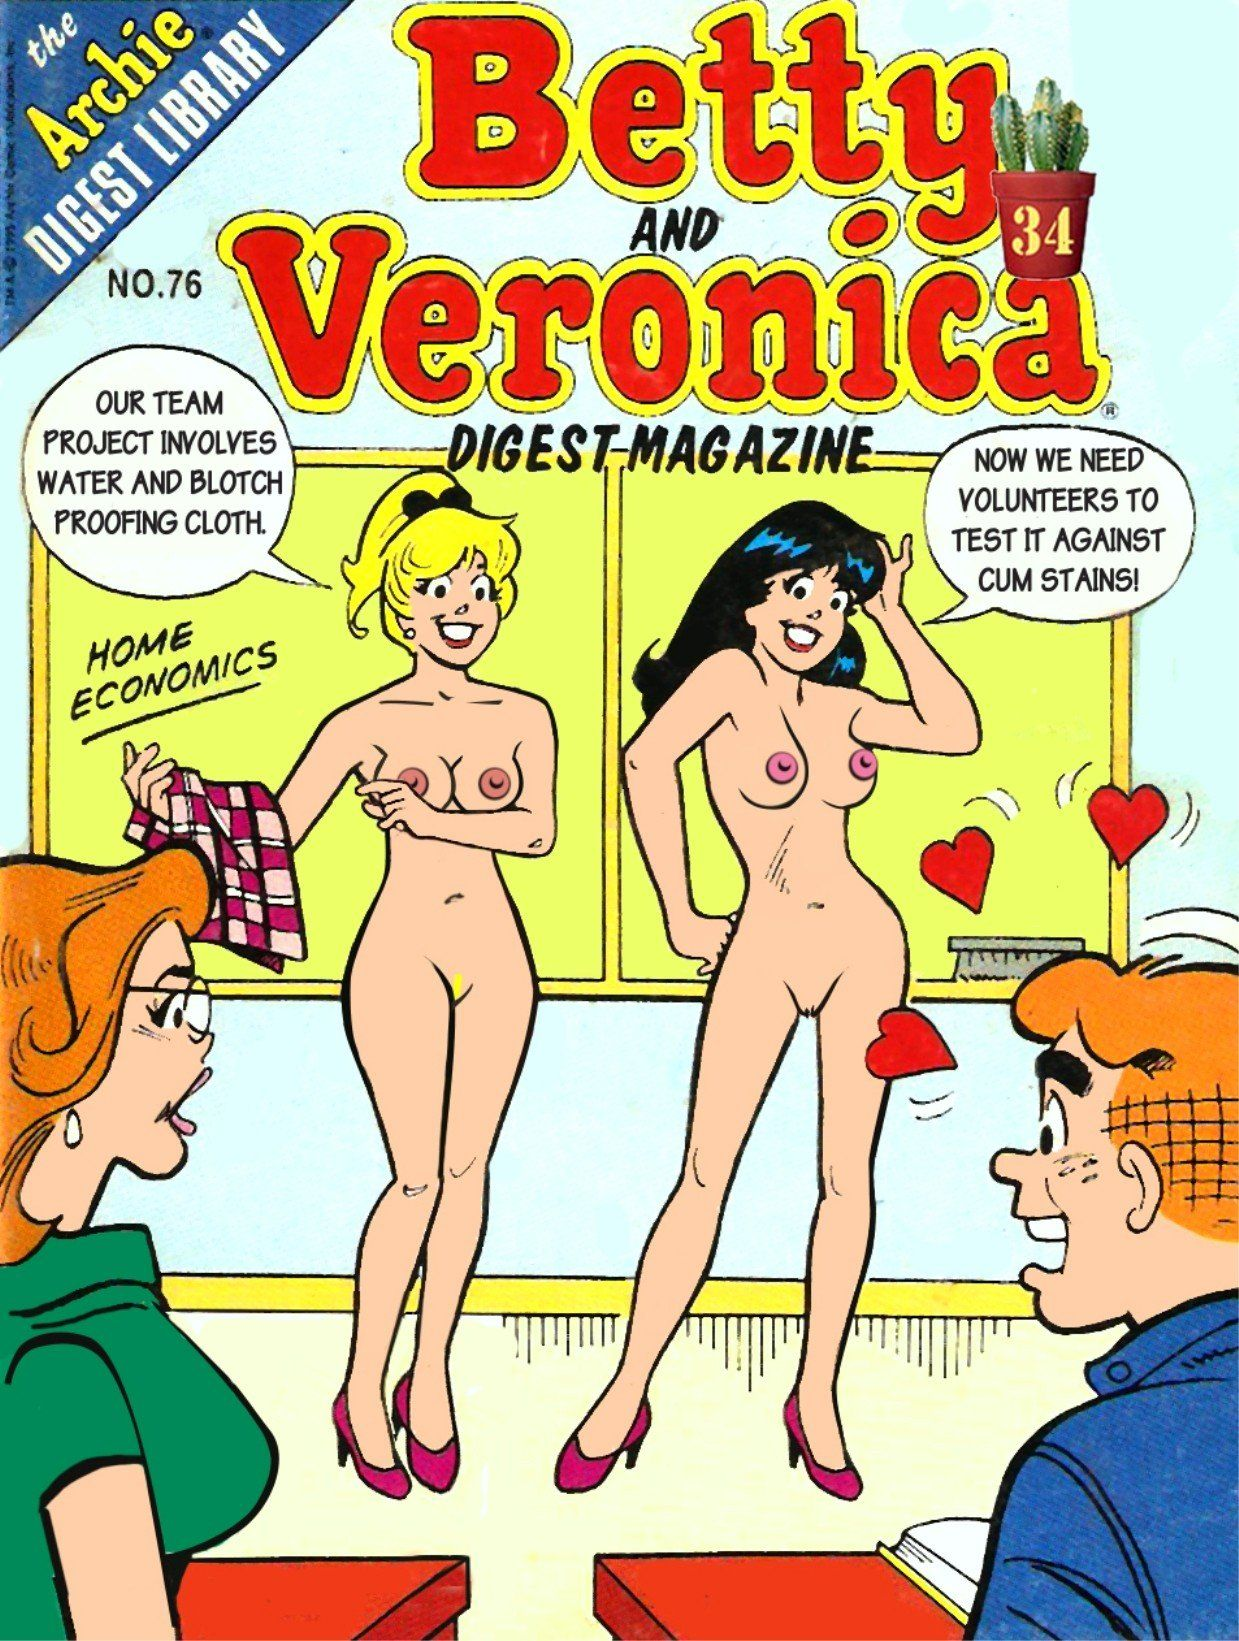 Veronica betty naked